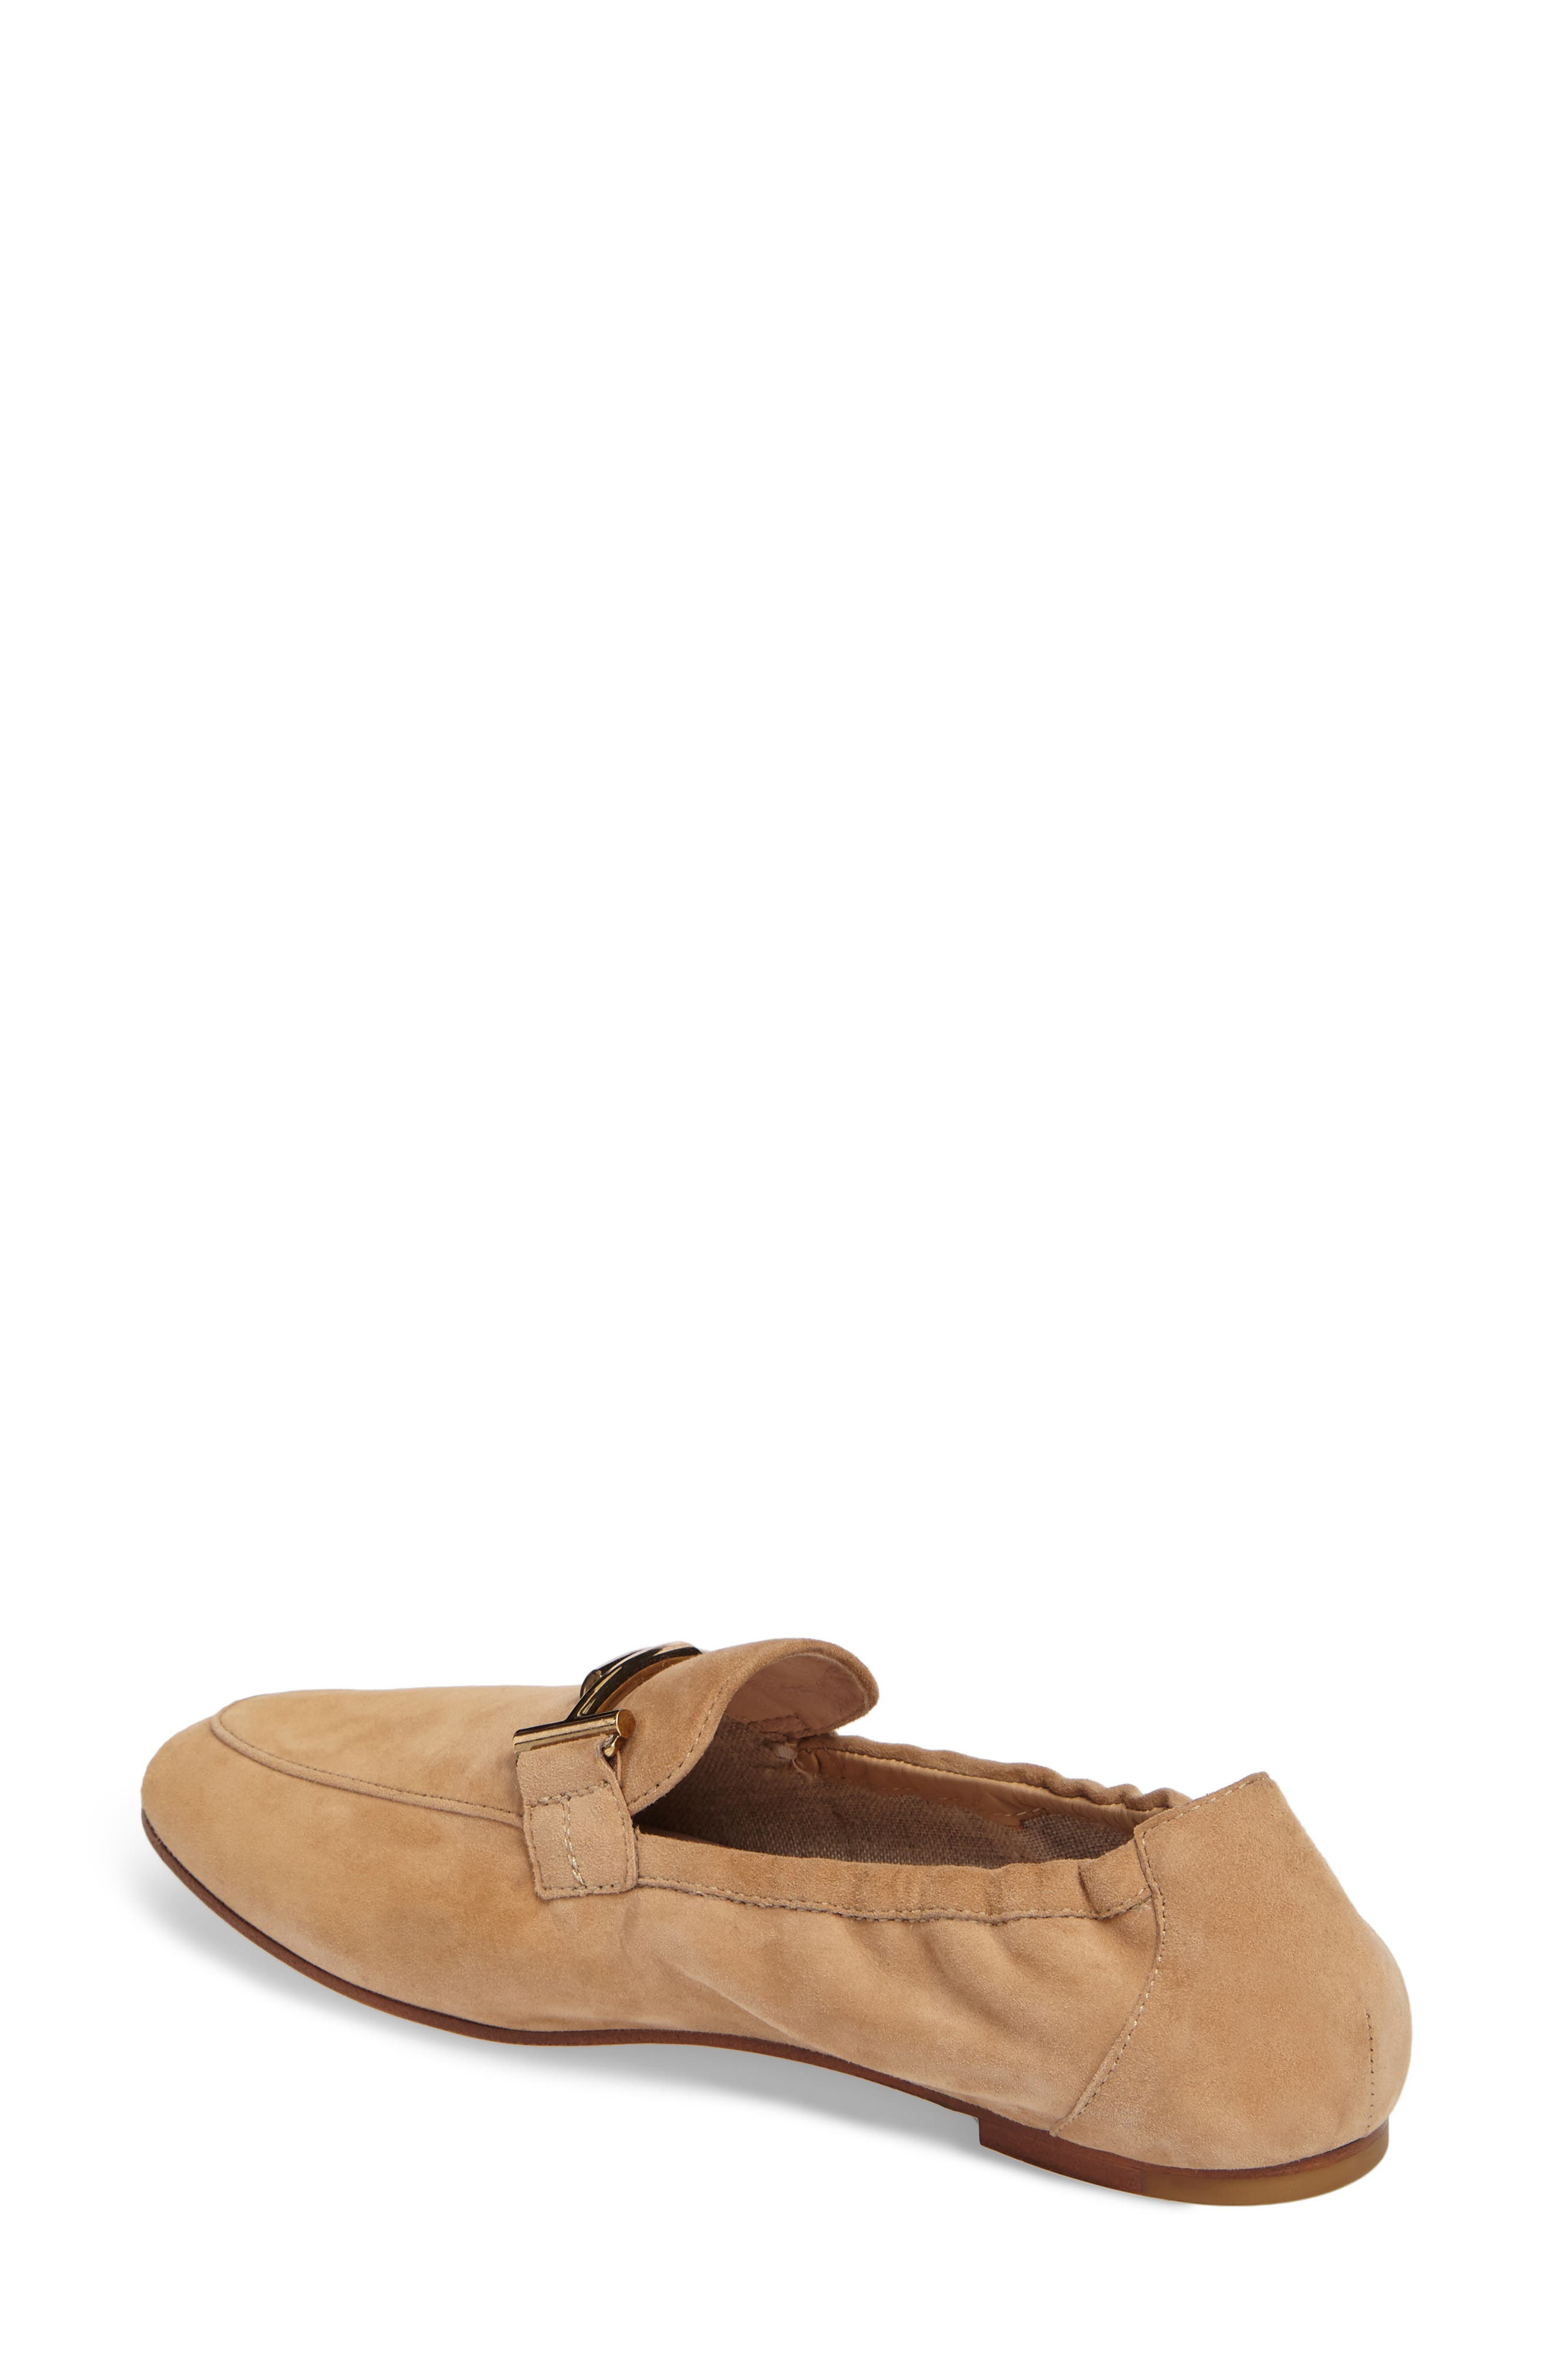 Double T Scrunch Loafer,                             Alternate thumbnail 6, color,